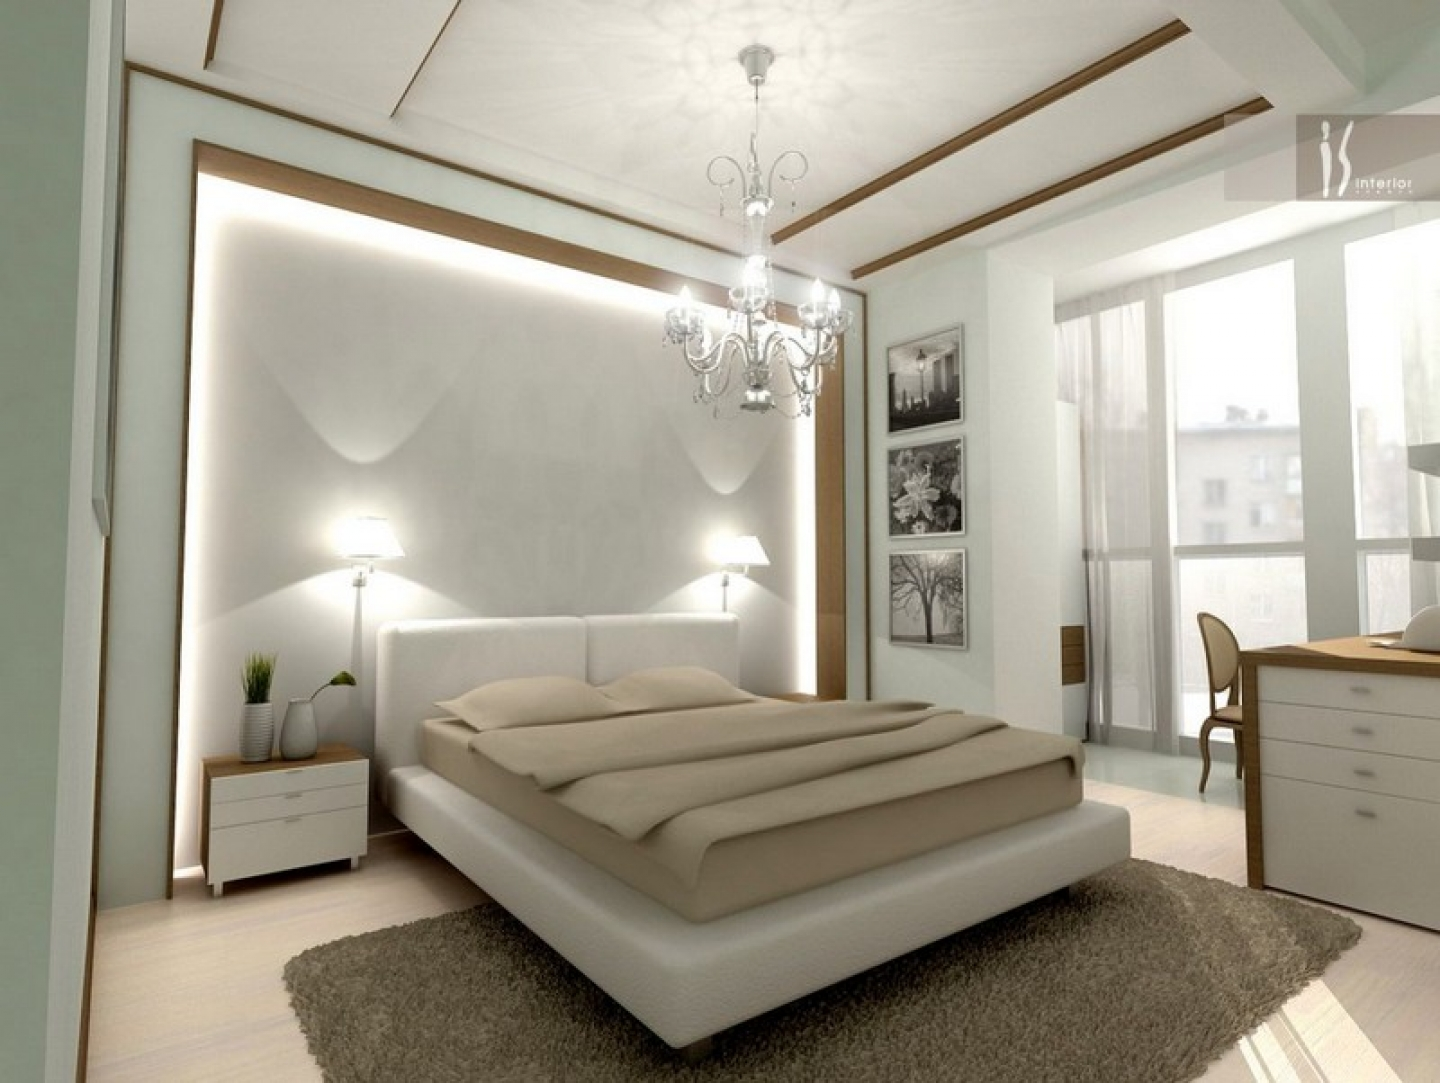 bedrooms ideas 25 cool bedroom designs collection the wow style 8869